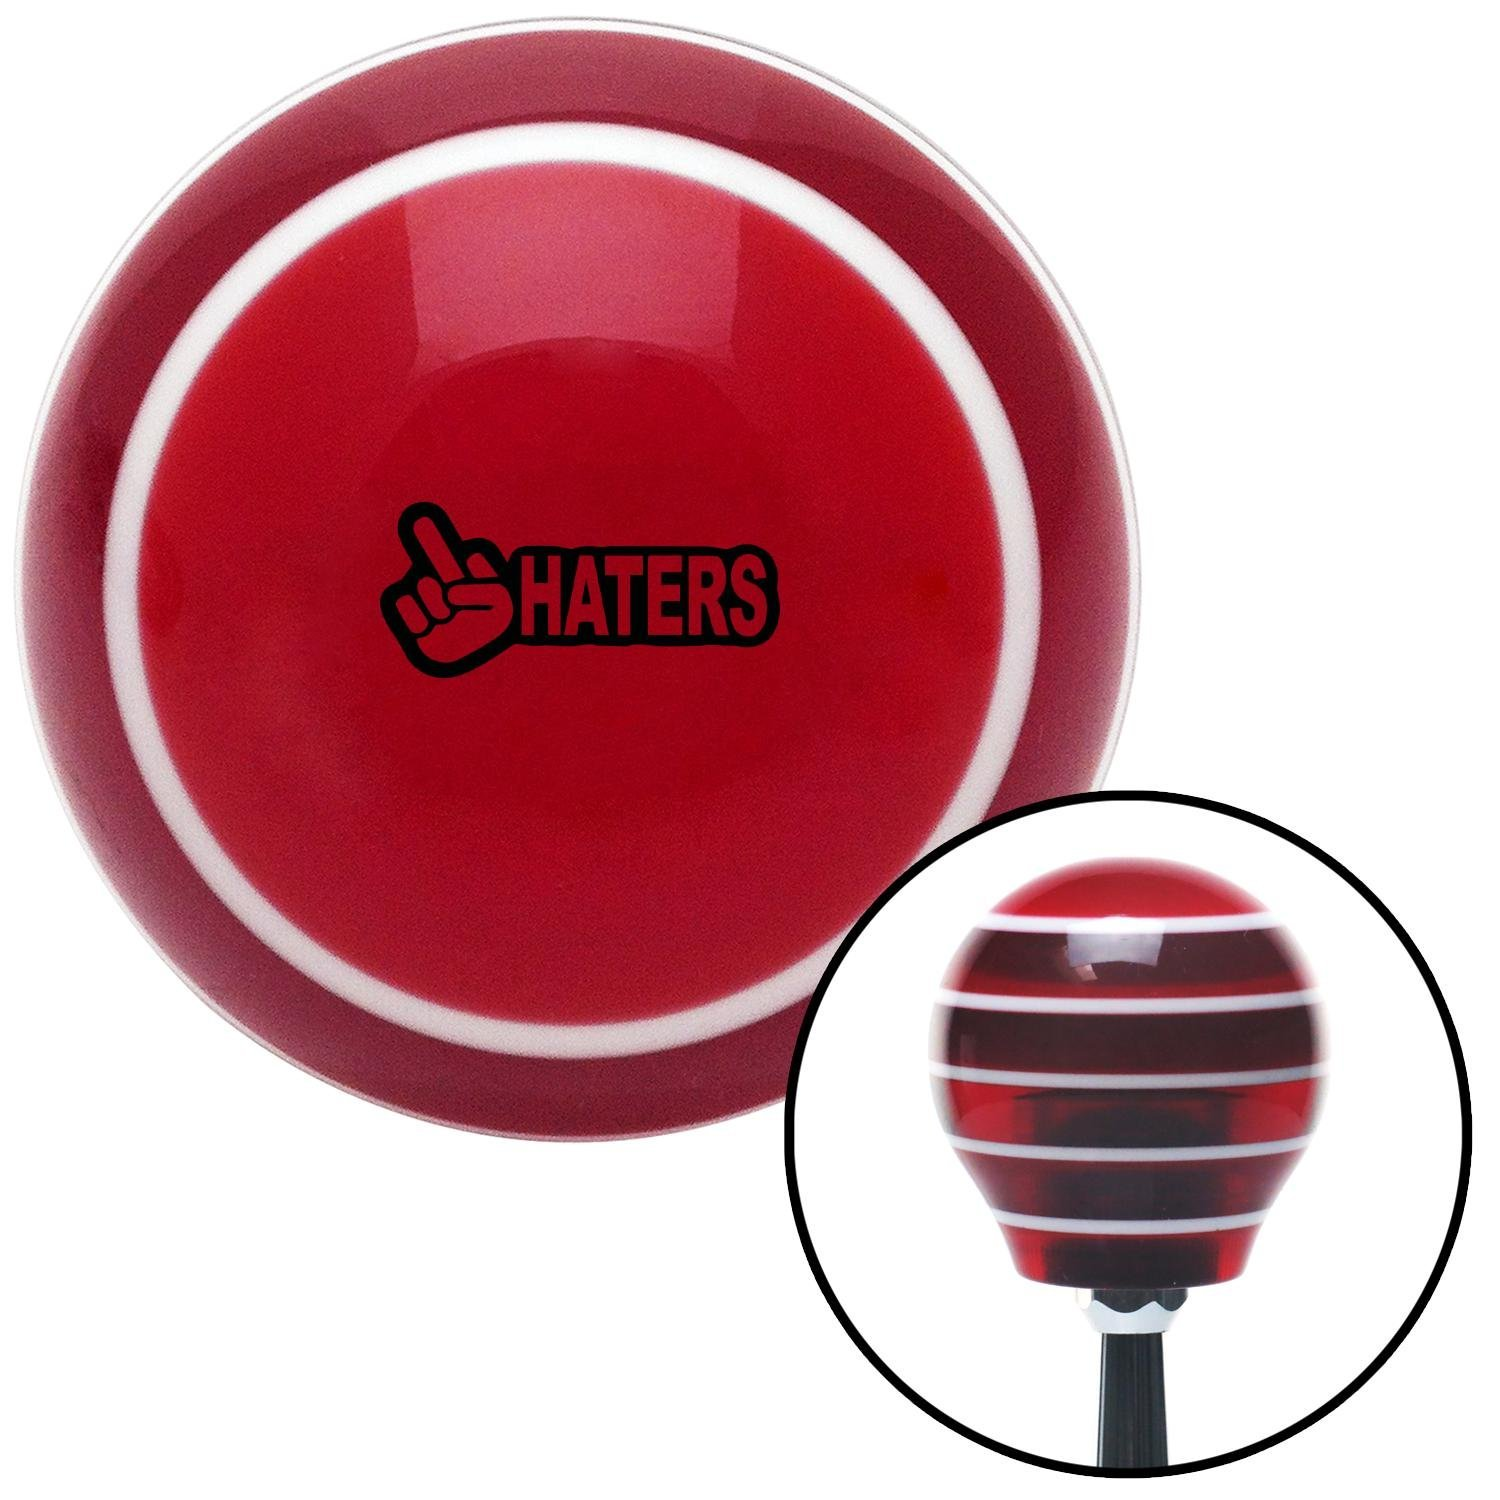 American Shifter 274552 Shift Knob Black Haters Red Stripe with M16 x 1.5 Insert